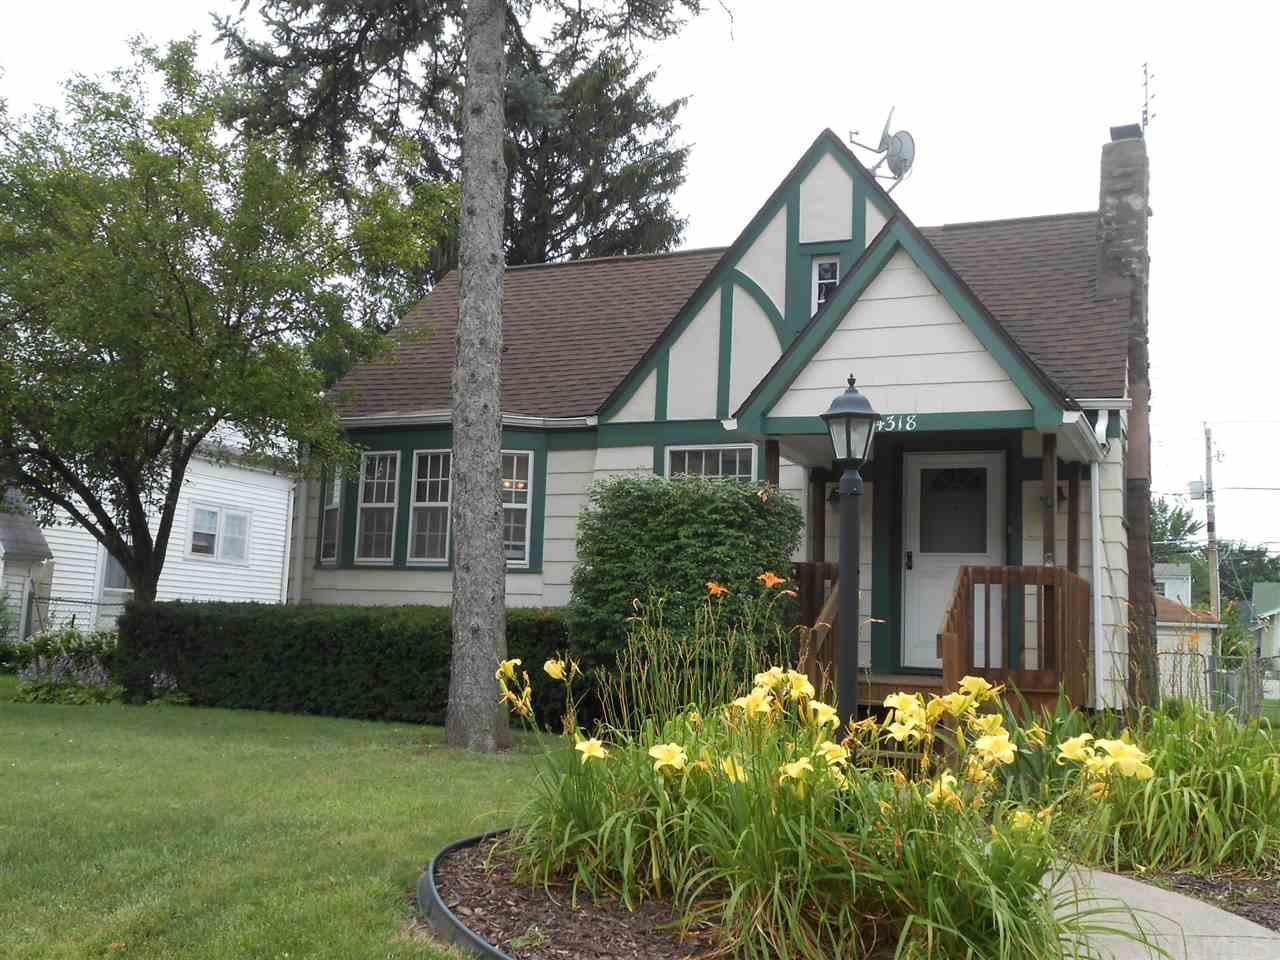 4318 Buell, Fort Wayne, IN 46807